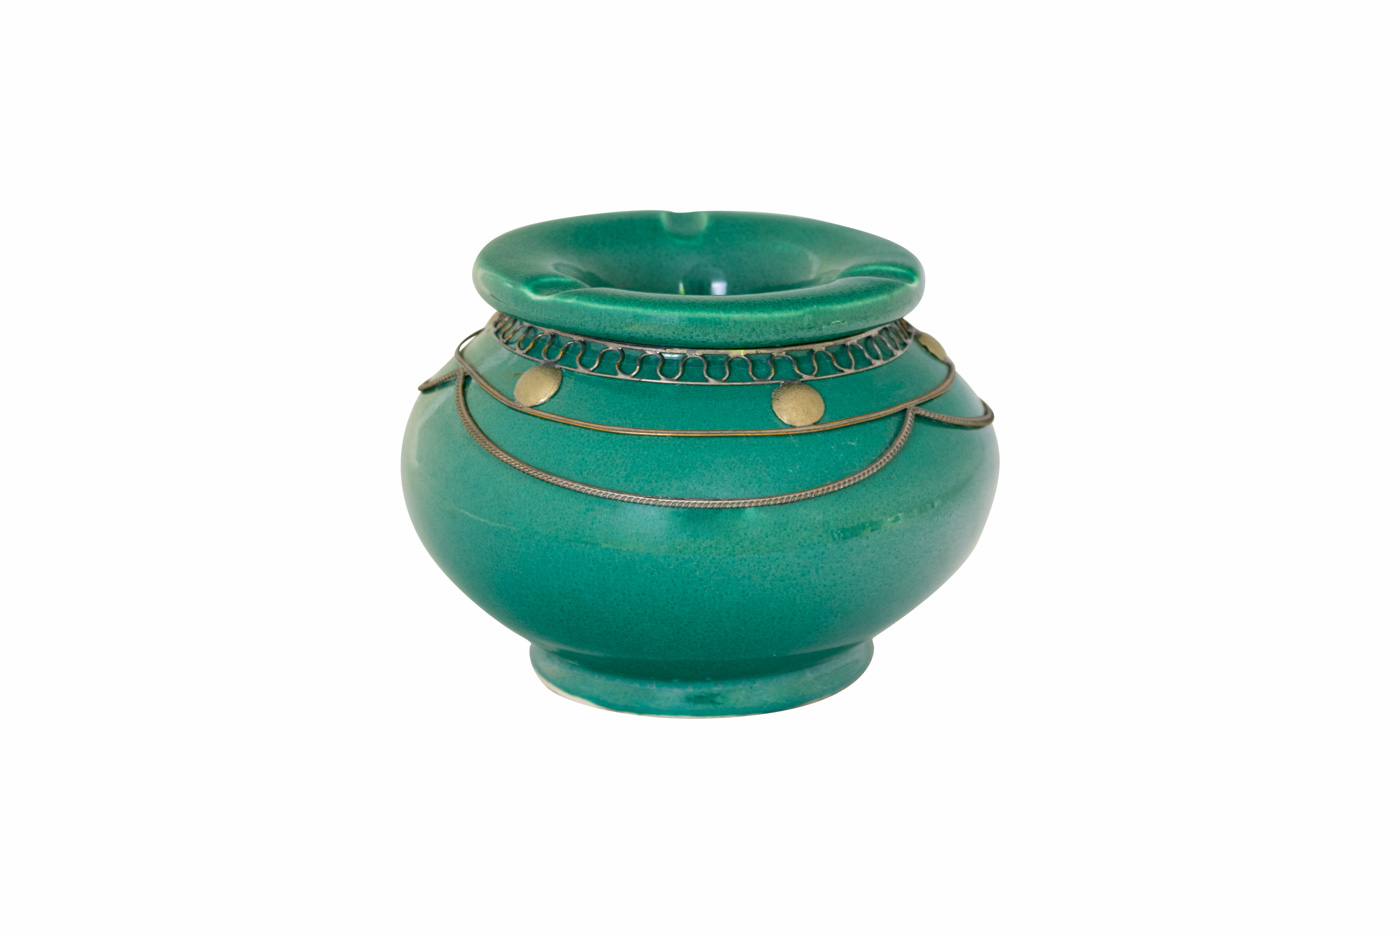 Moroccan ashtray in ceramic and metal, turquoise